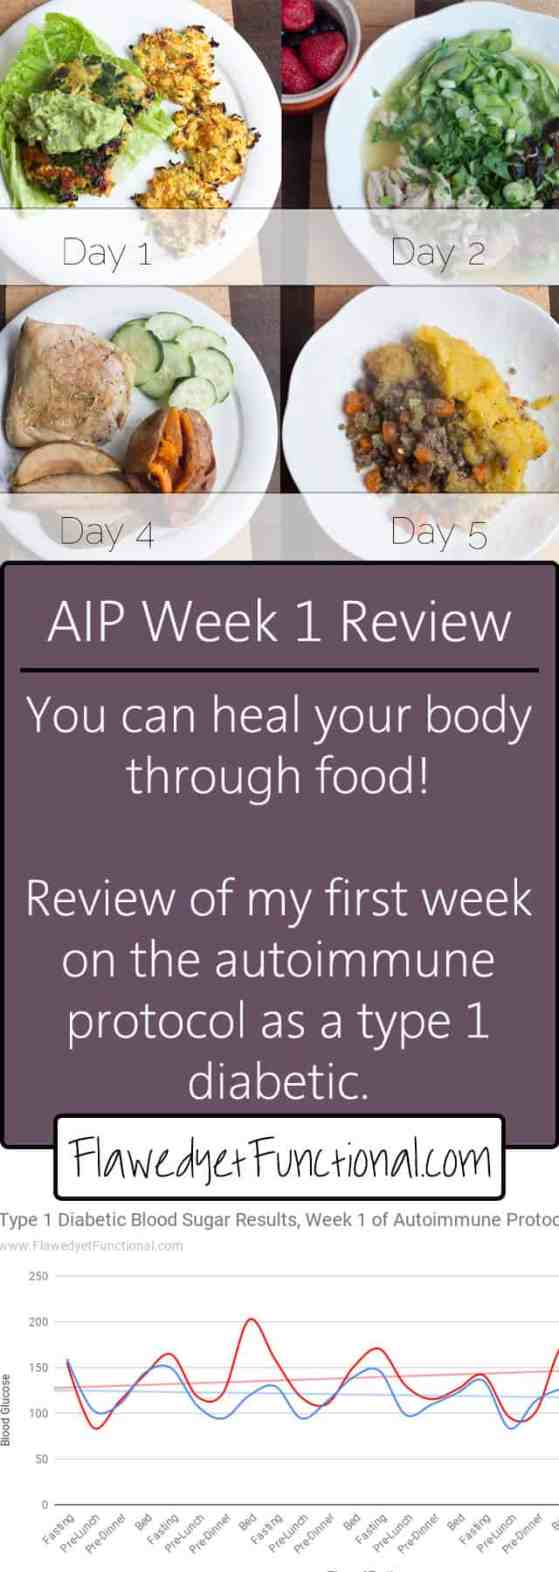 Autoimmune Protocol Review of Week 1